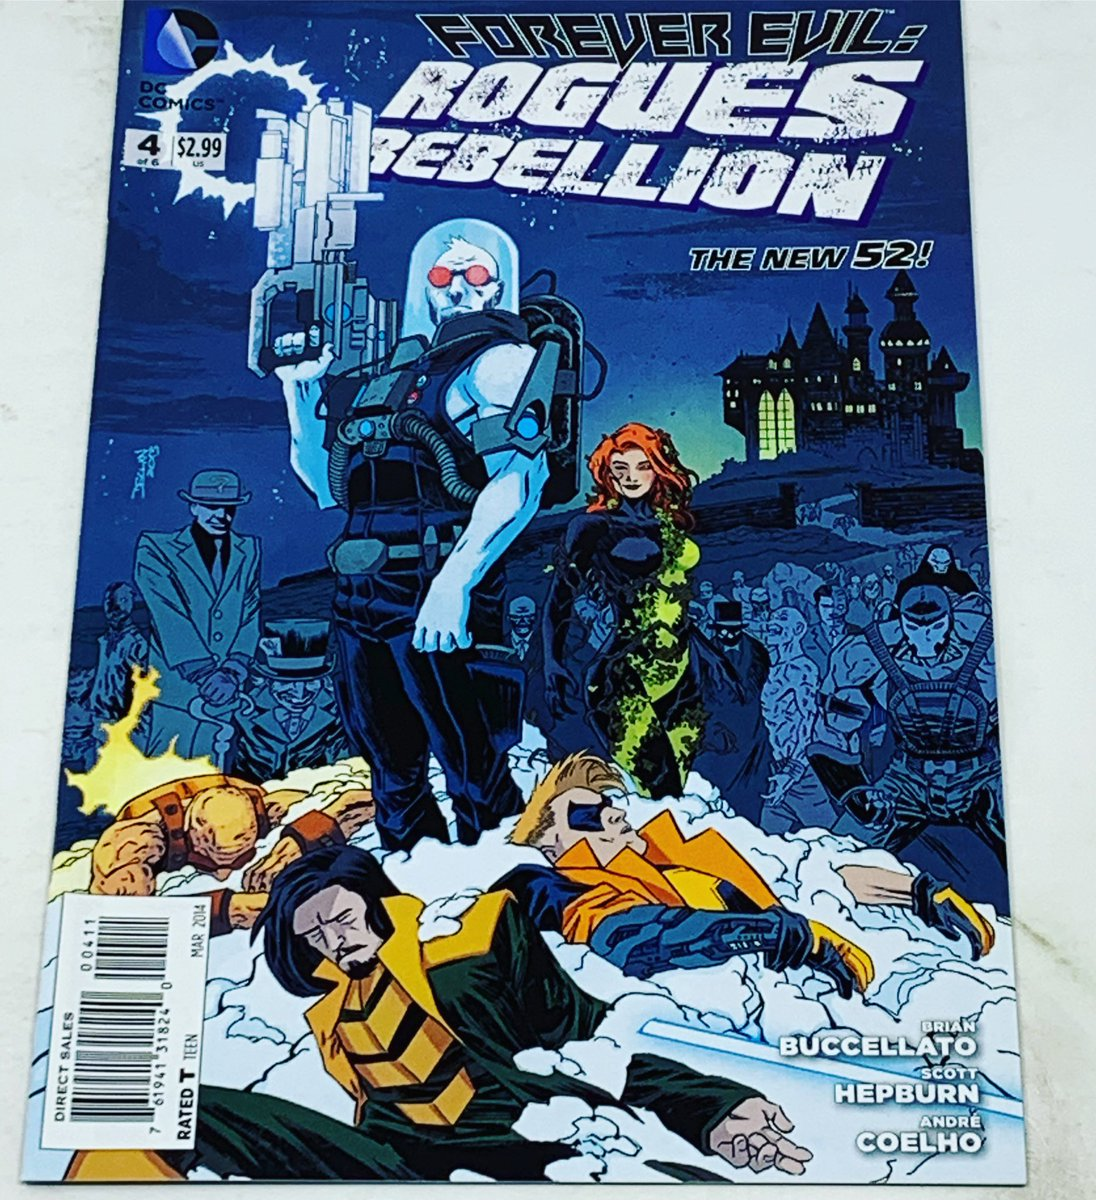 Declan Shalvey bosses Cover Of The Day today with Forever Evil: Rogues Rebellion #4. Awesome style and so many great DC villains crammed into one cover 🔥🔥 #declanshalvey #flashrogues #dcomics #coveroftheday #unrealitystore #weareus https://t.co/ap8UgvXfXO